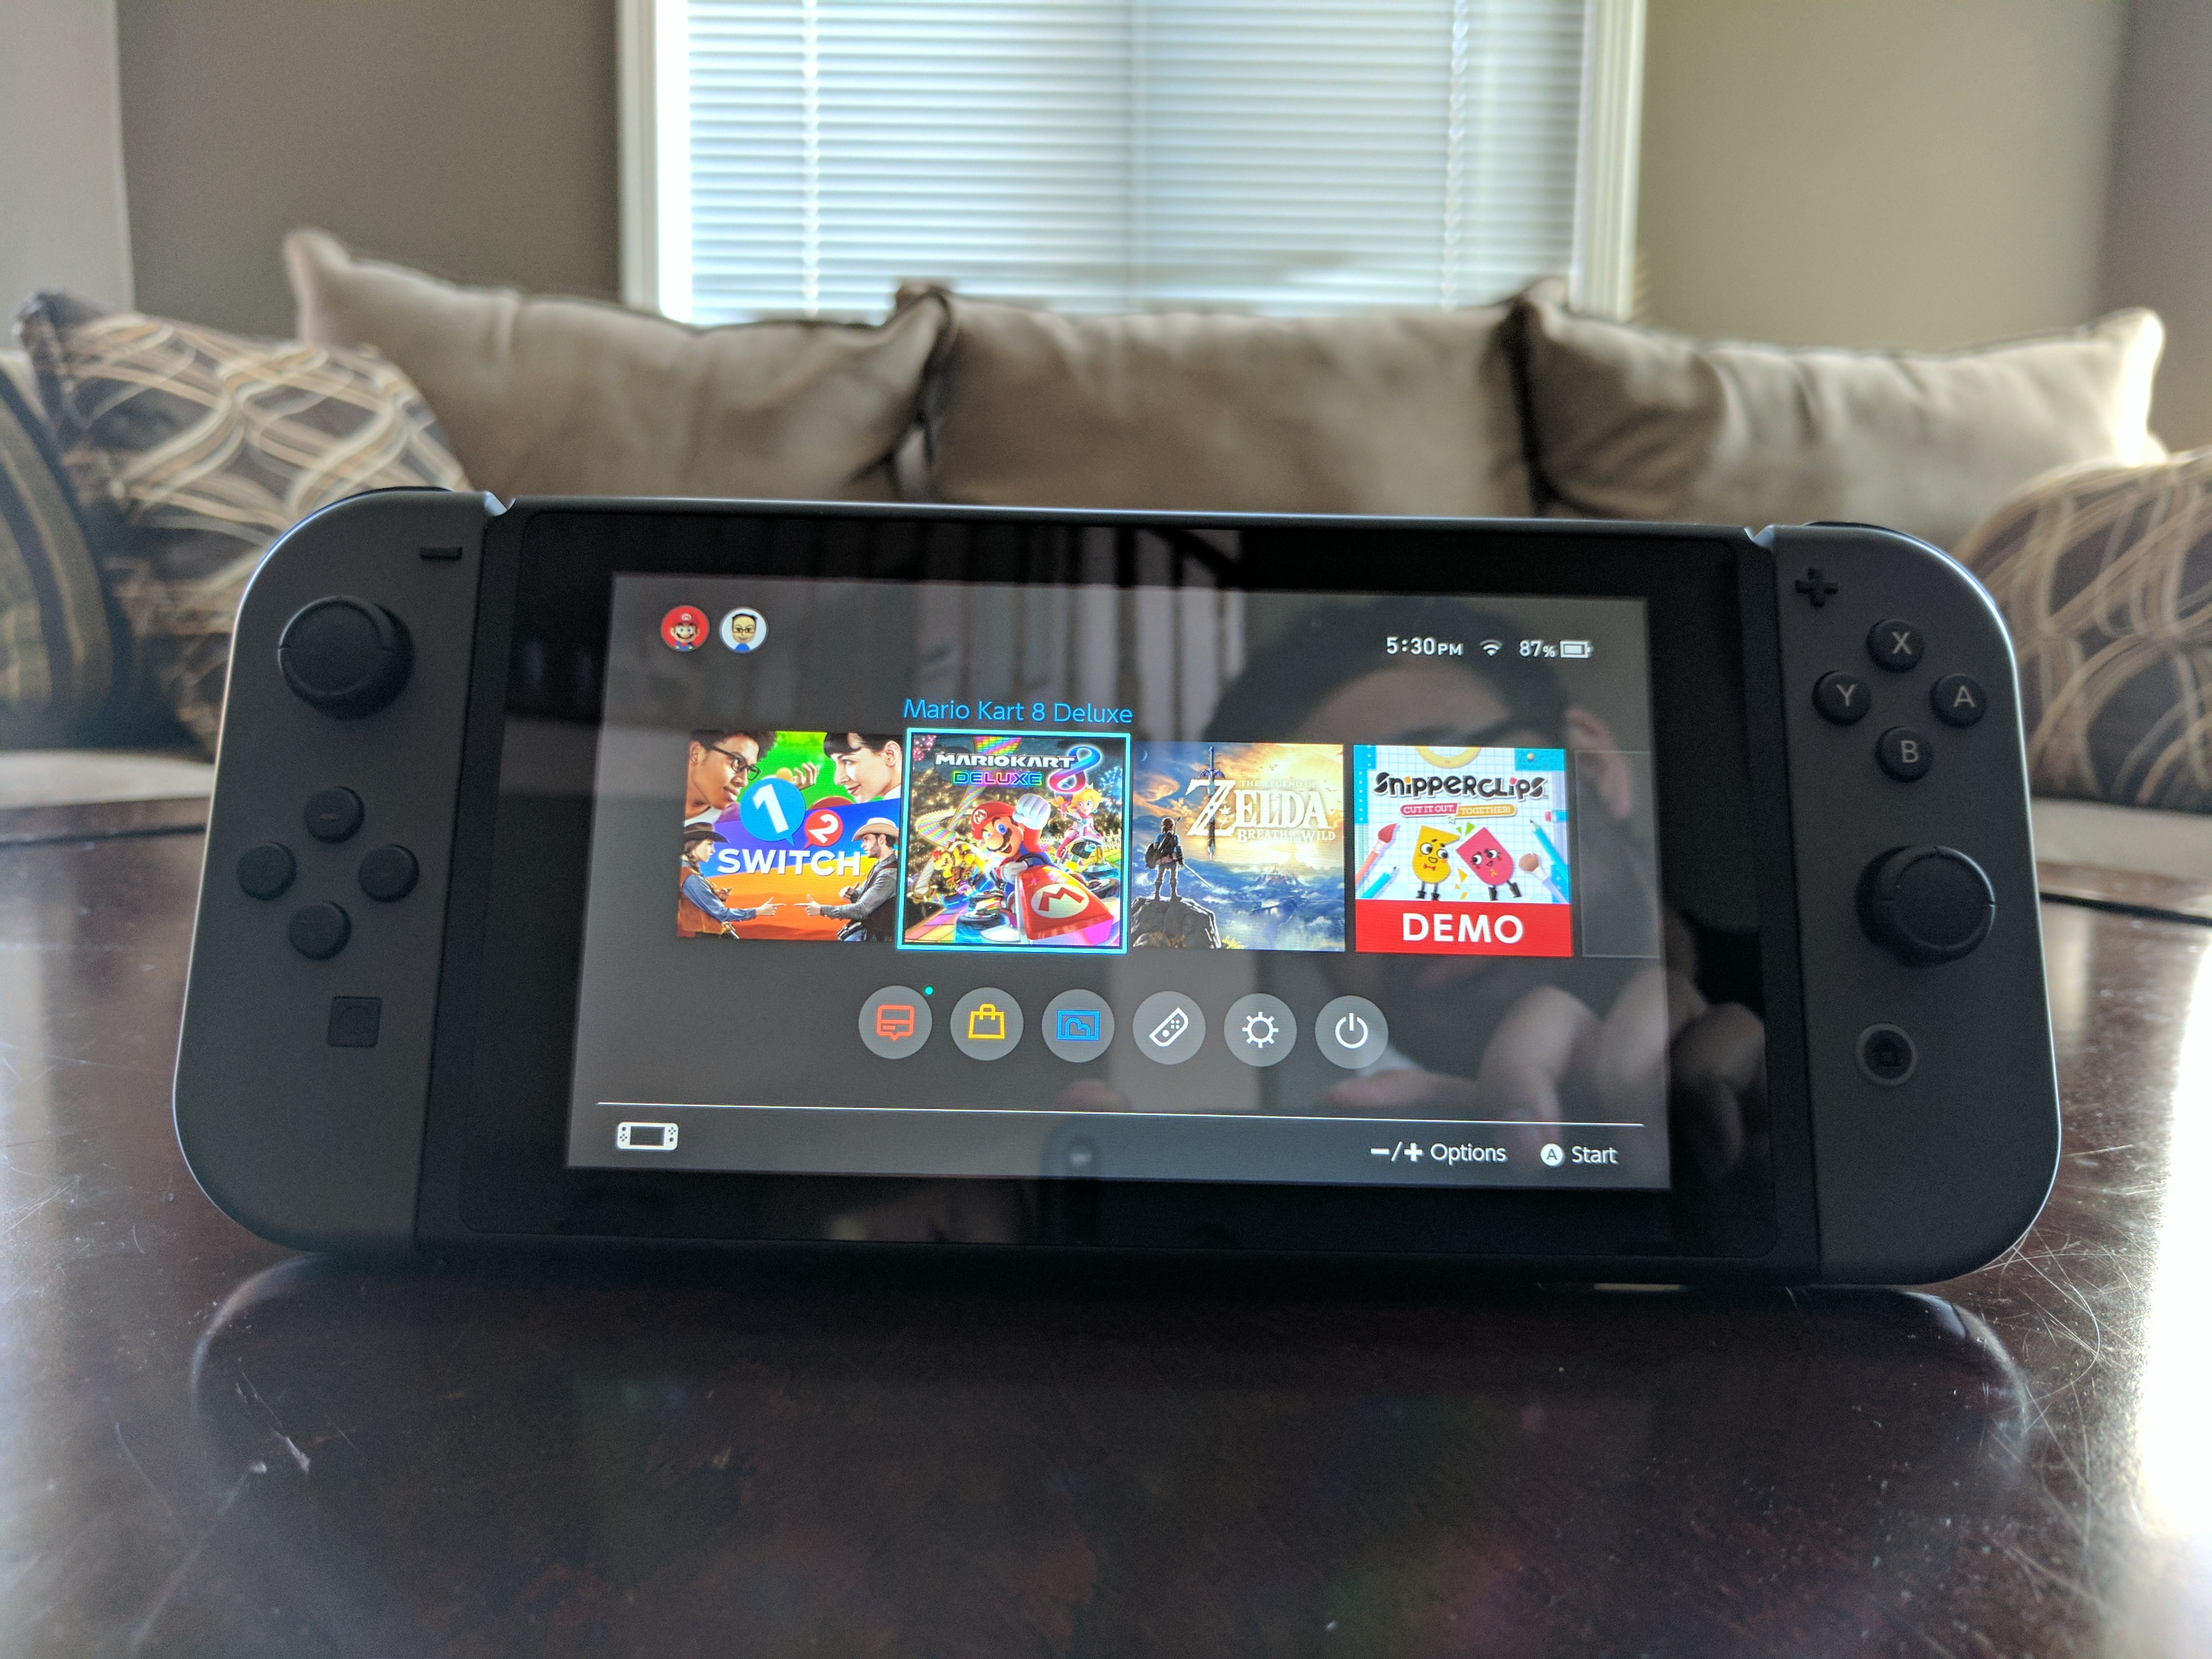 Nintendo Switch Review Thecanadiantechie Joycon Left Right Grey Overall I Had A Great Time With The Its Good System And Offers Unique Experience Compared To Xbox One Ps4 But As Of